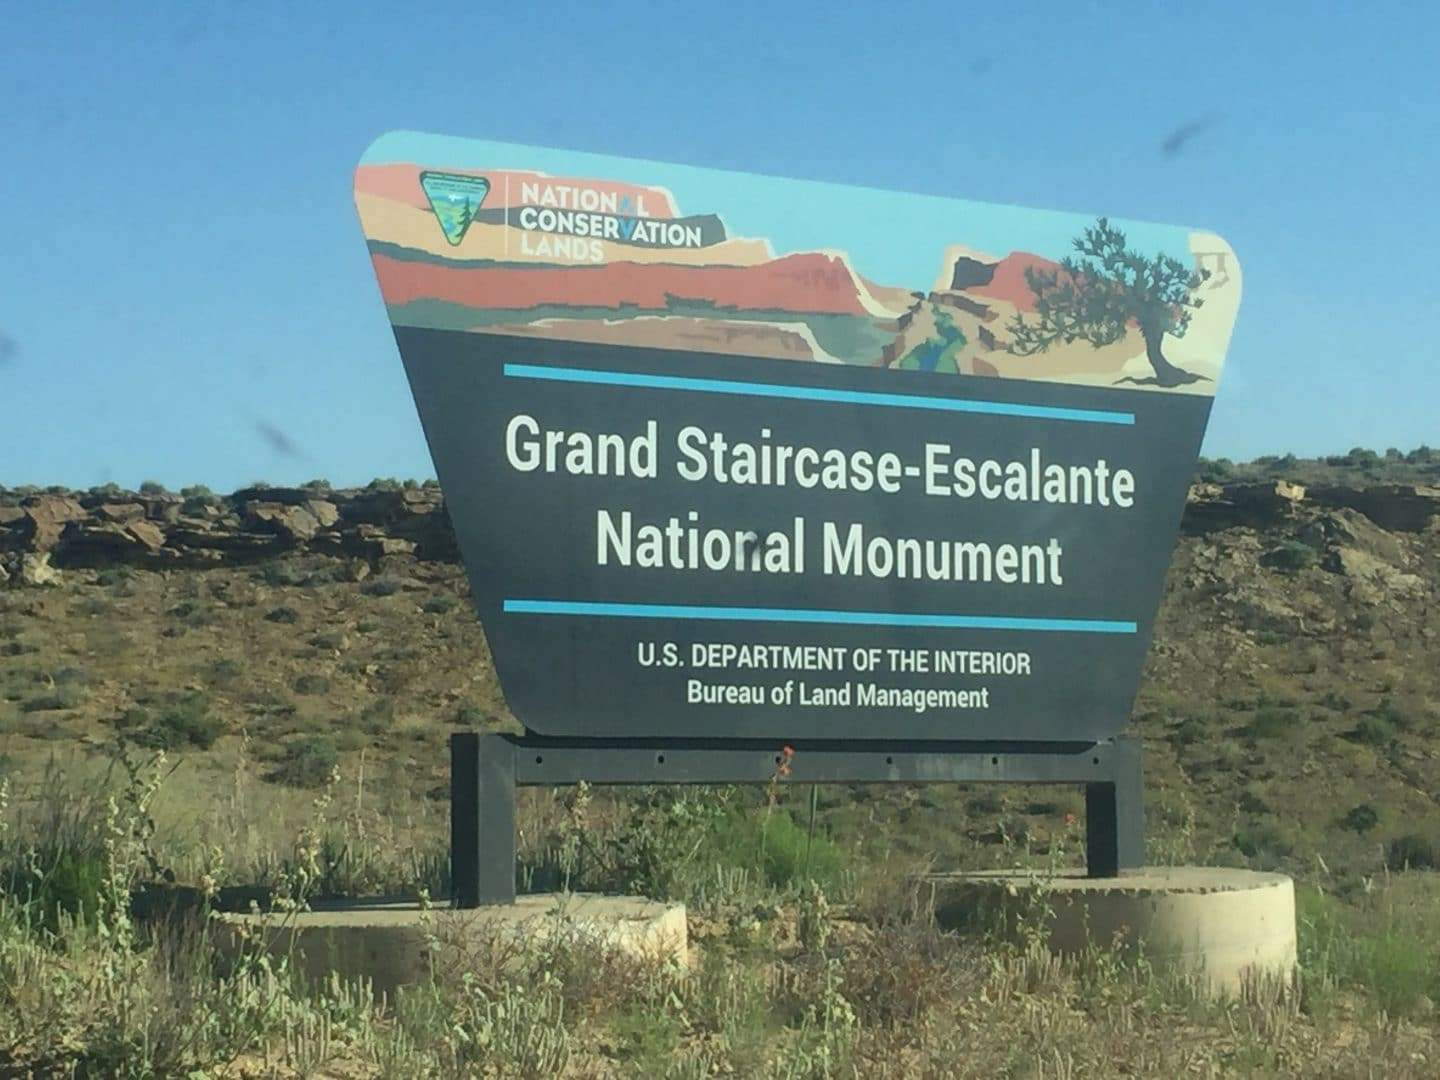 Only in existence for a little over 20 years, Grand Staircase has been highly controversial.